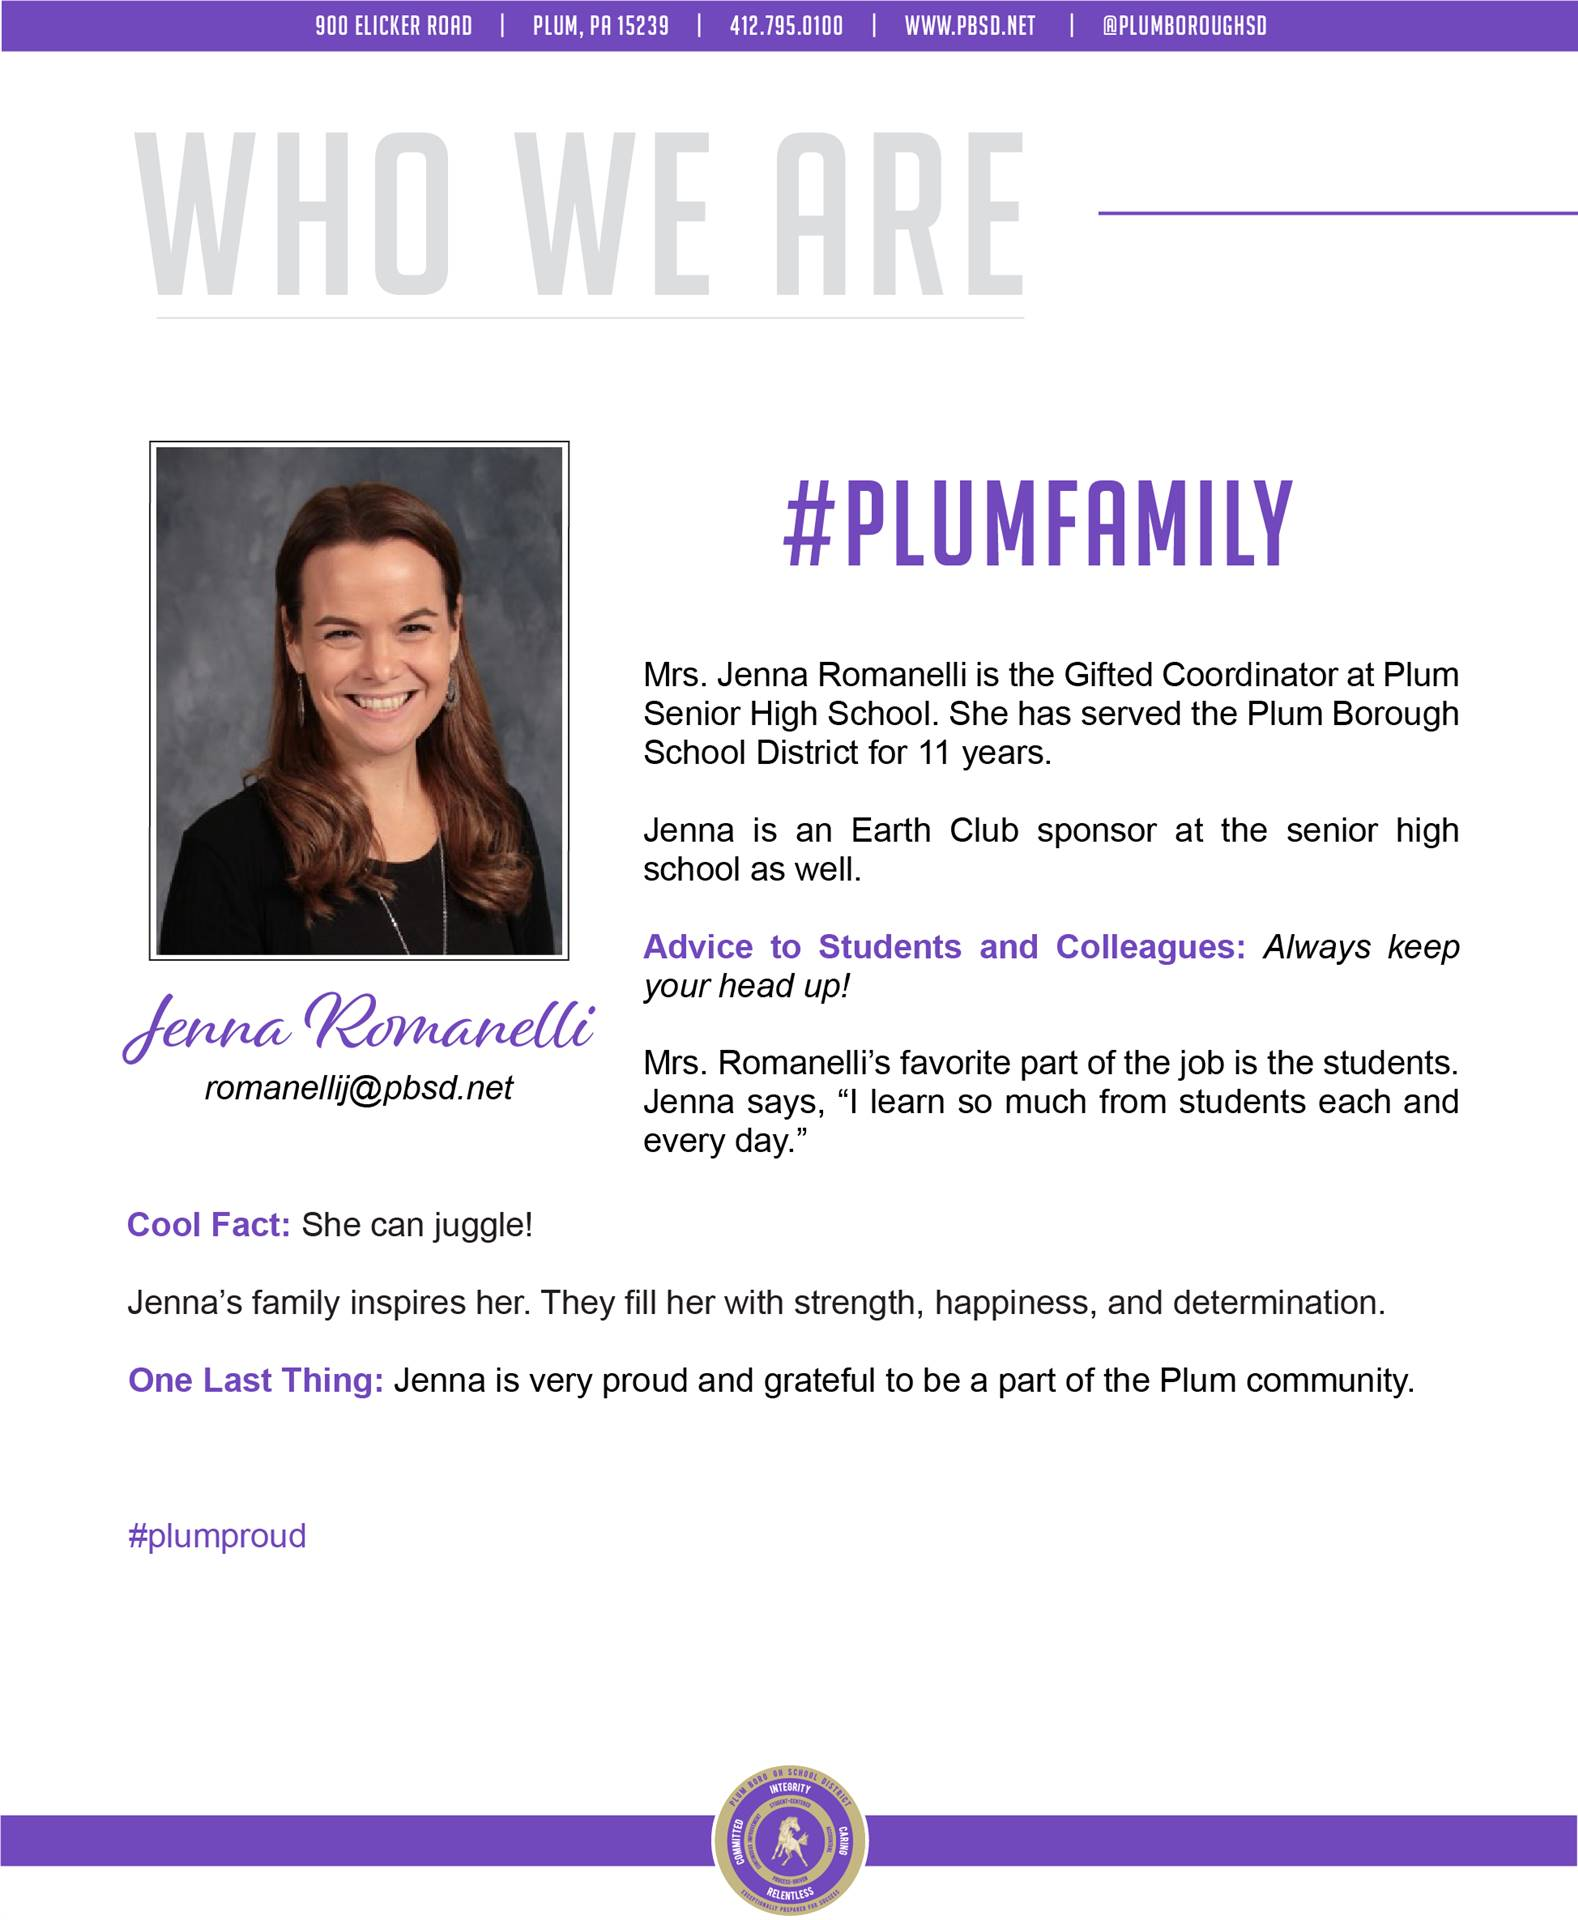 Who We Are Wednesday features Jenna Romanelli.